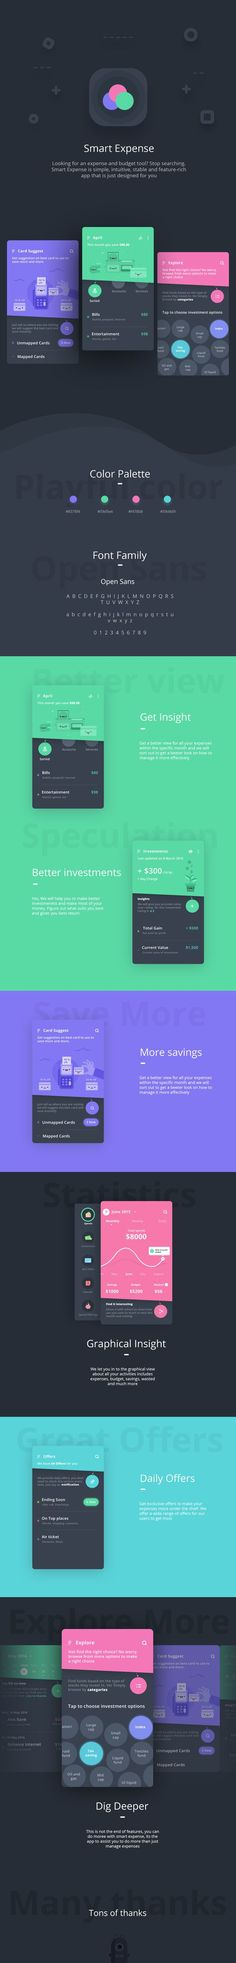 Interaction Design and UI/UX: Smart Expense App: